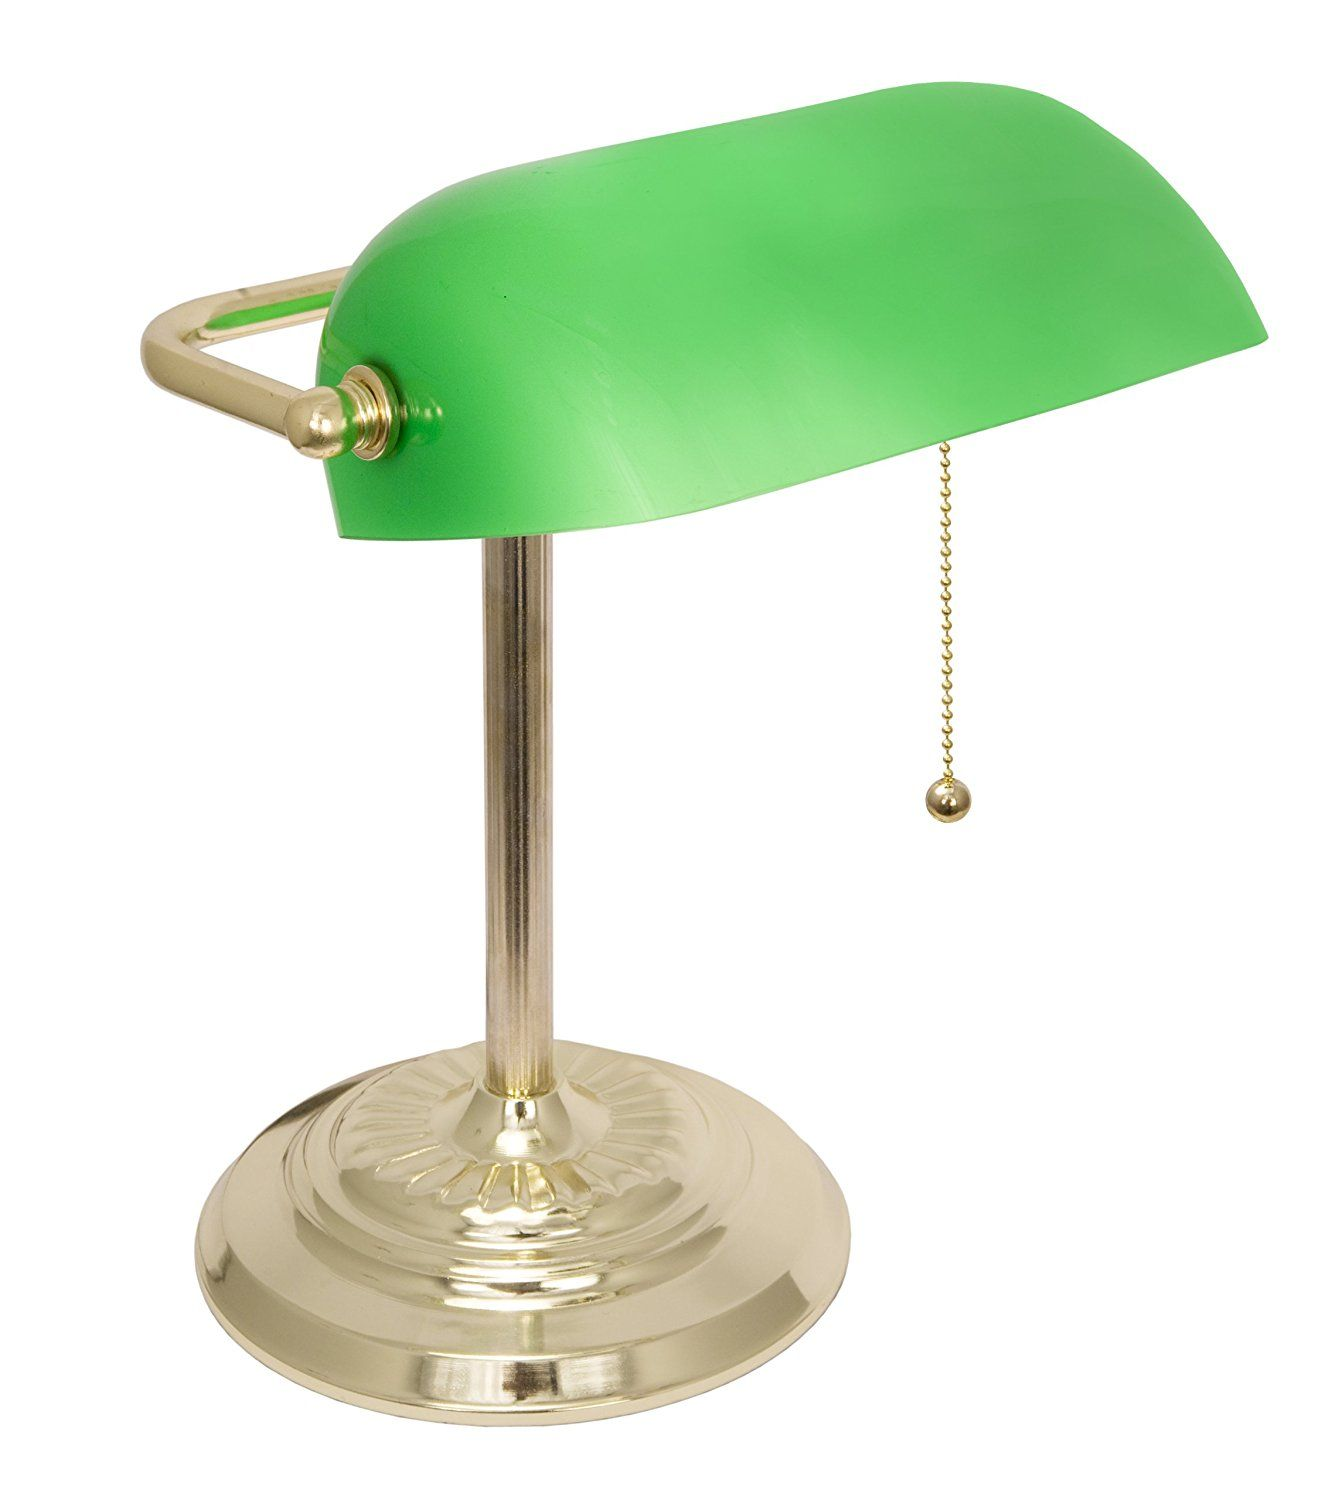 Lightaccents metal bankers desk lamp the bankers lamp bankers lightaccents metal bankers desk lamp the bankers lamp aloadofball Choice Image